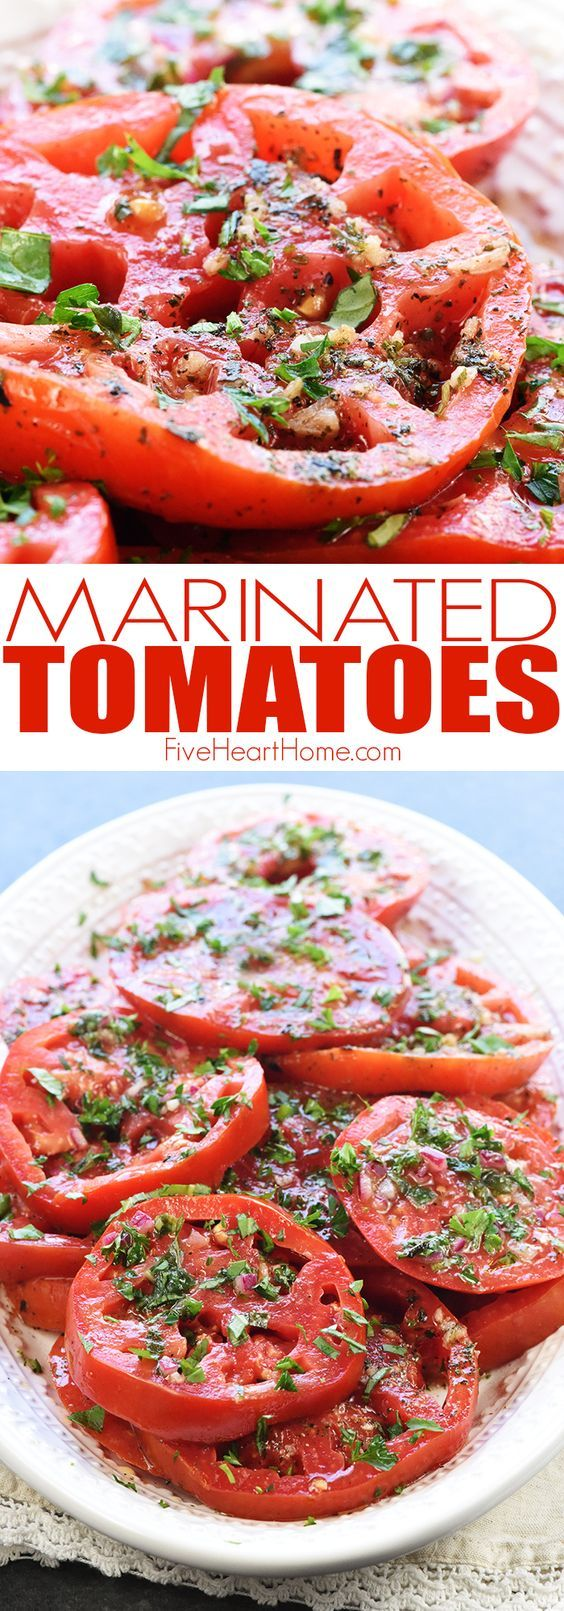 The Best Marinated Tomatoes Ripe Juicy Tomatoes Soak Up Olive Oil Red Wine Vinegar Onion Garlic Fresh Herbs In This Zesty Summer Salad Vegetable Recipes